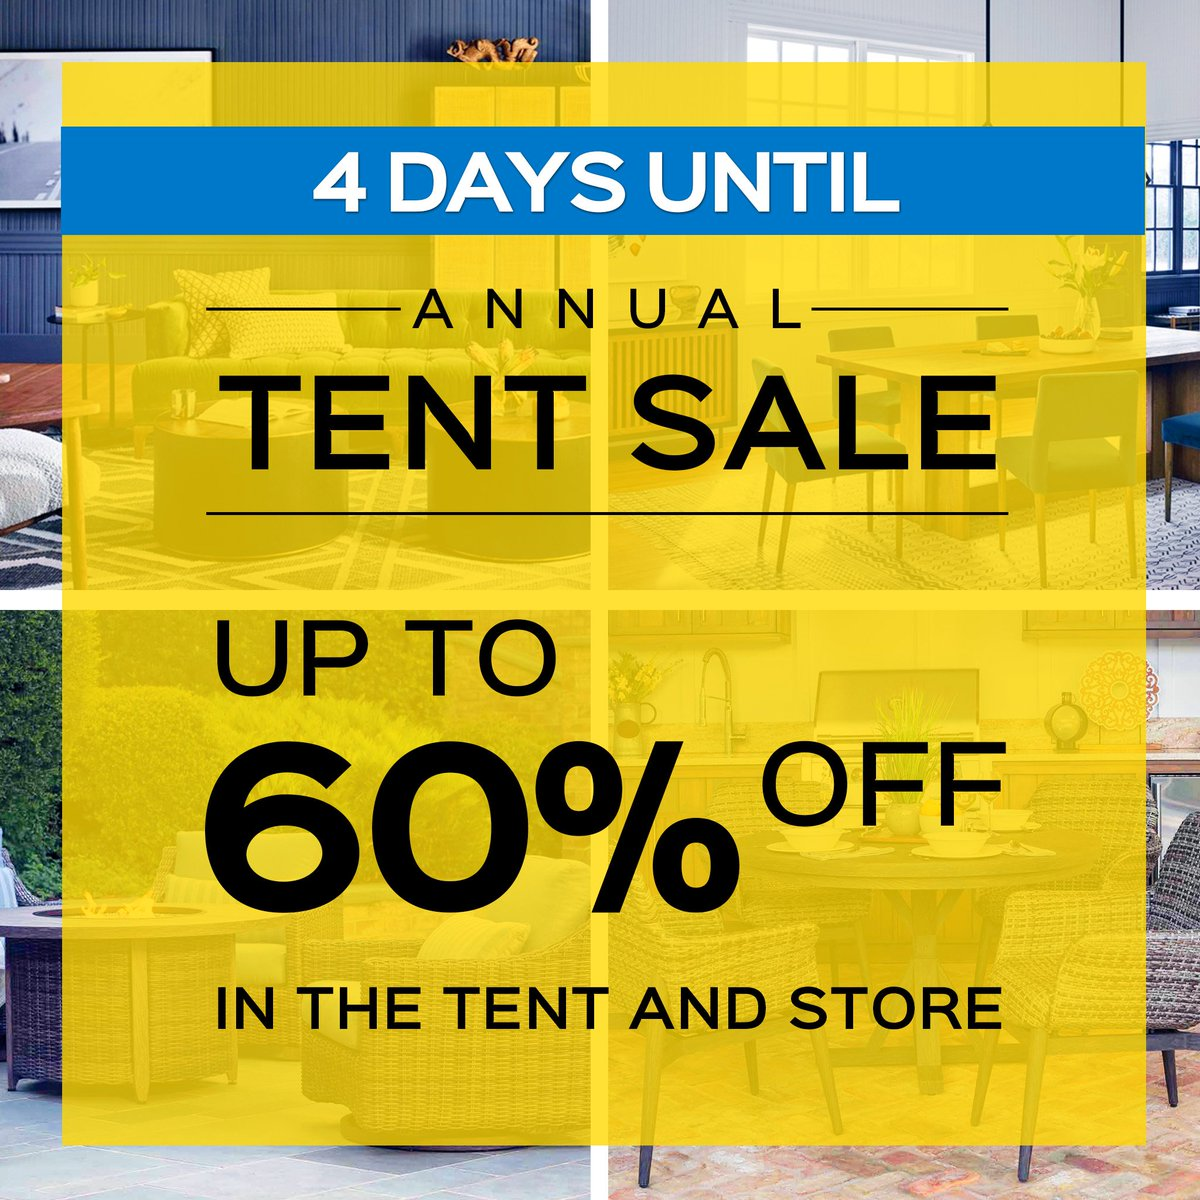 Luxe Furniture Annual Tent Sale - Up to 60 per cent off in the tent and store